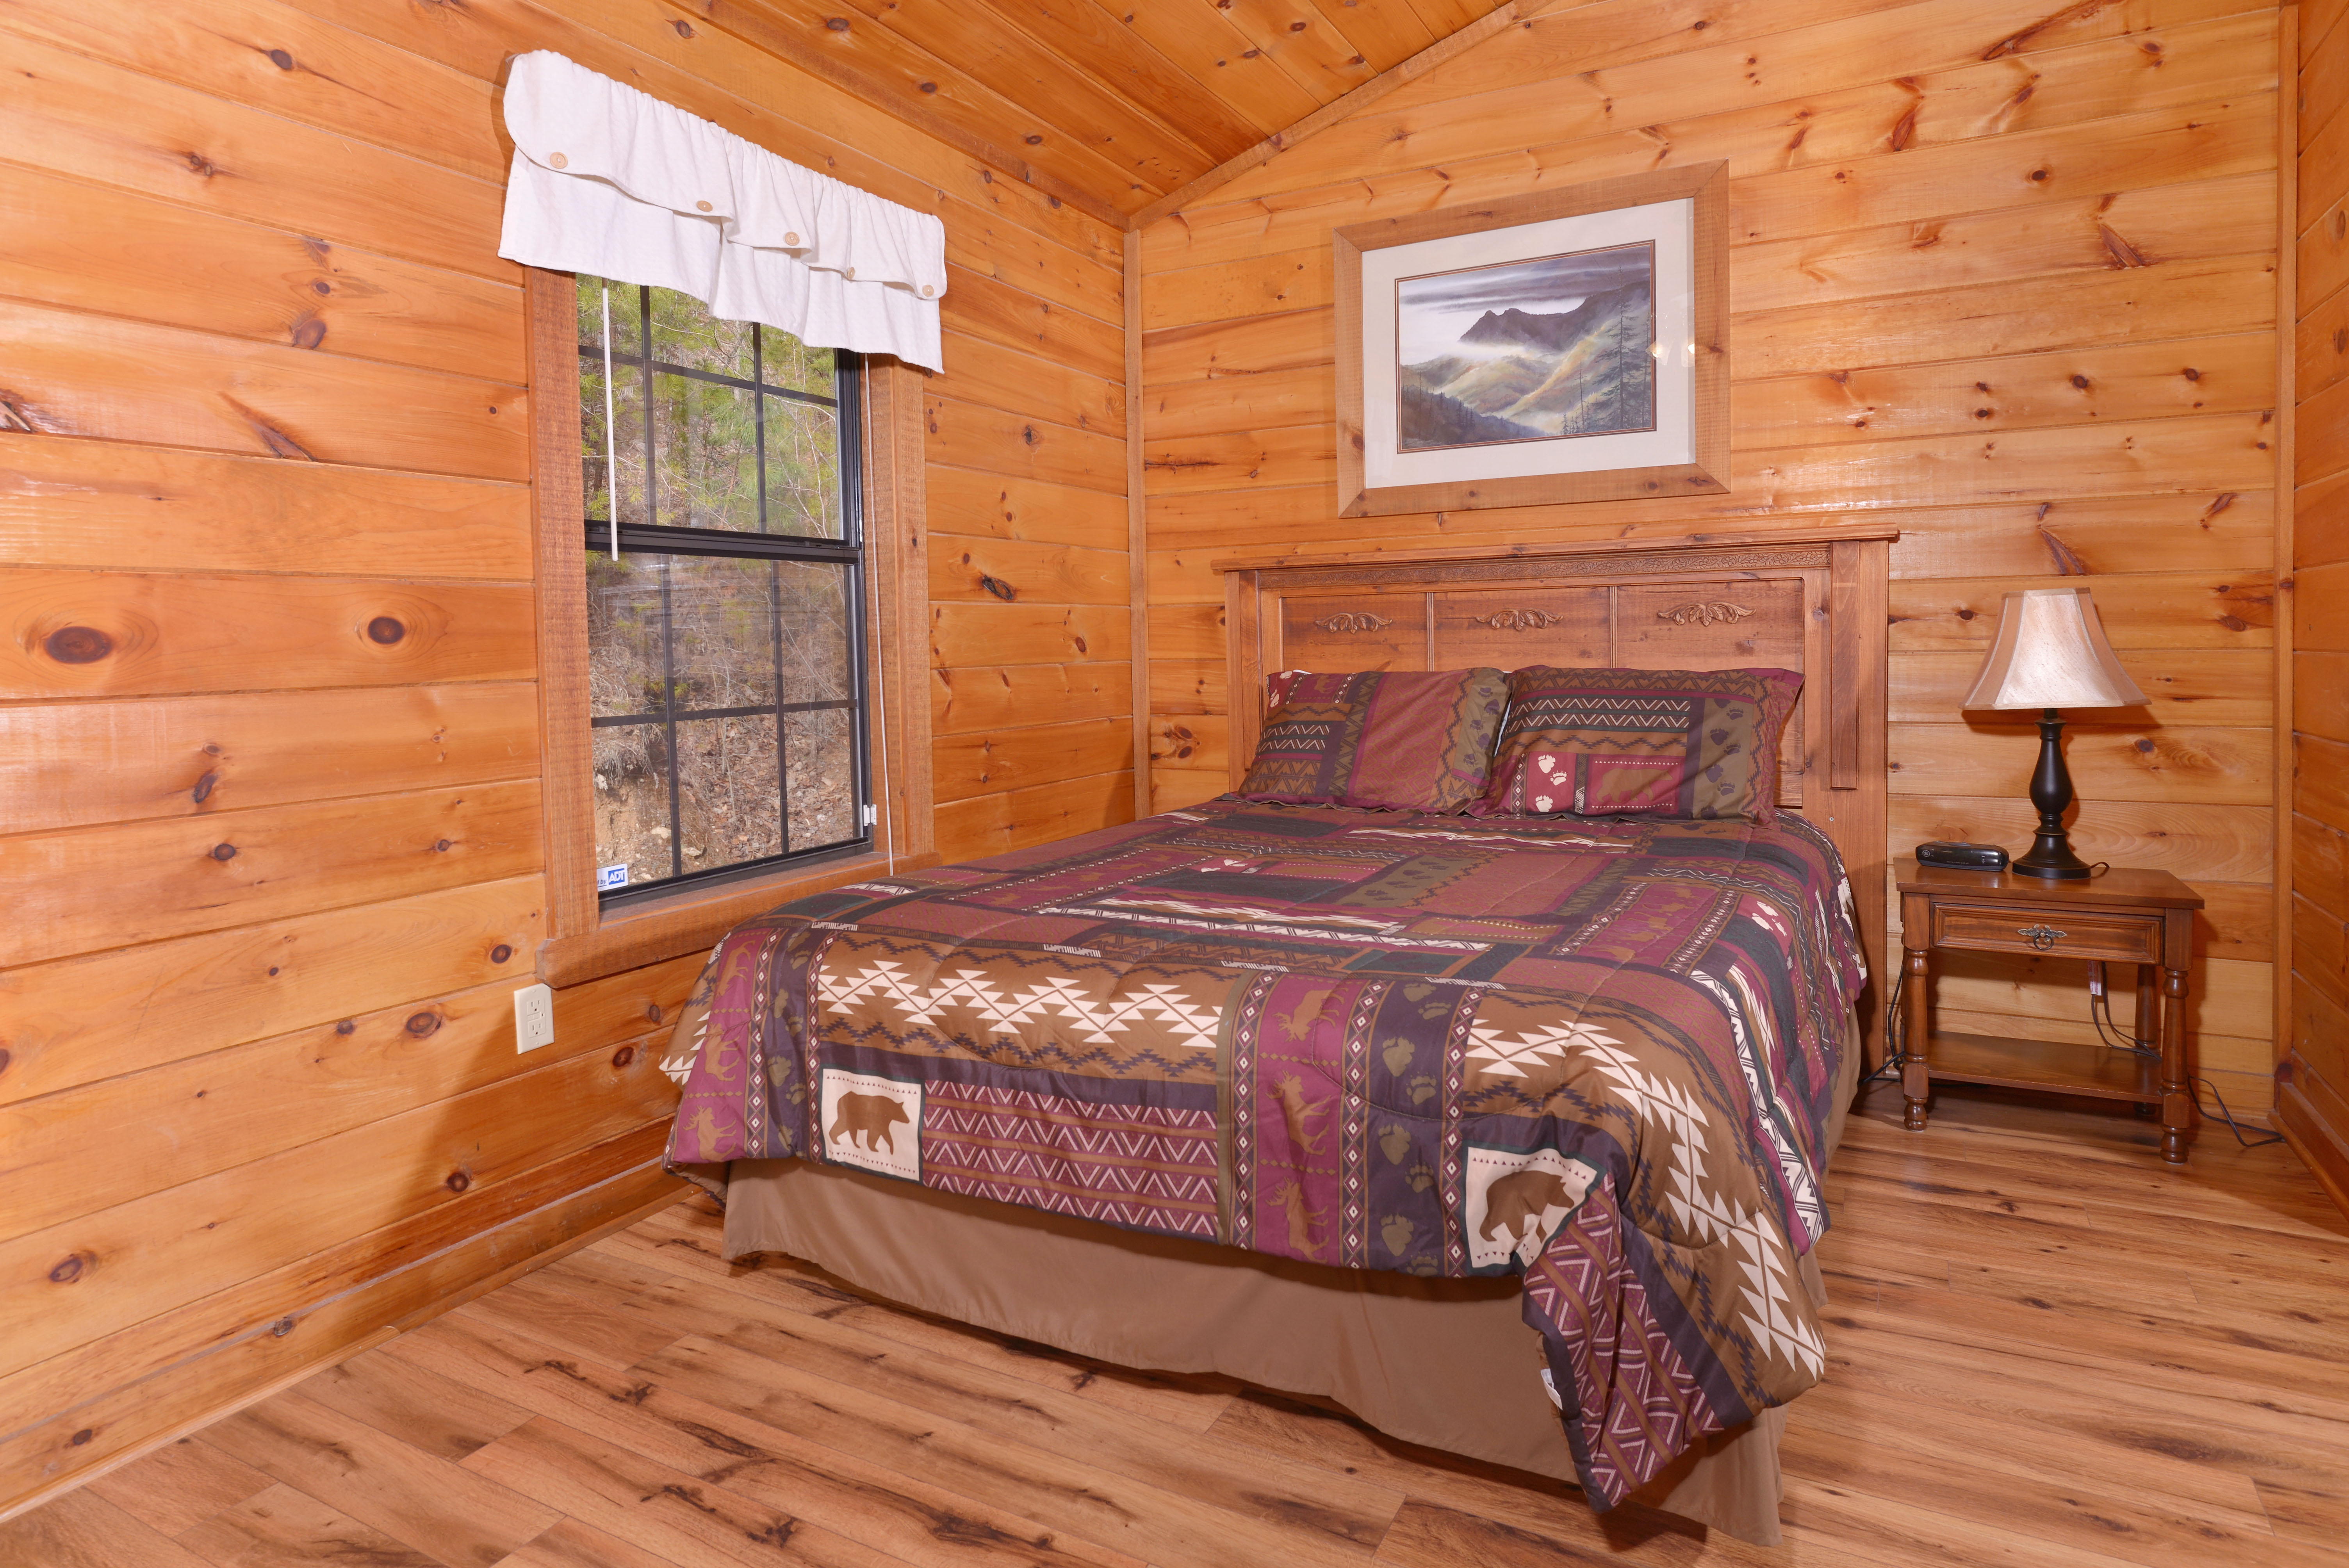 Giggler 39 s getaway 352 new chalet in pigeon forge for Pigeon forge cabins with hot tub